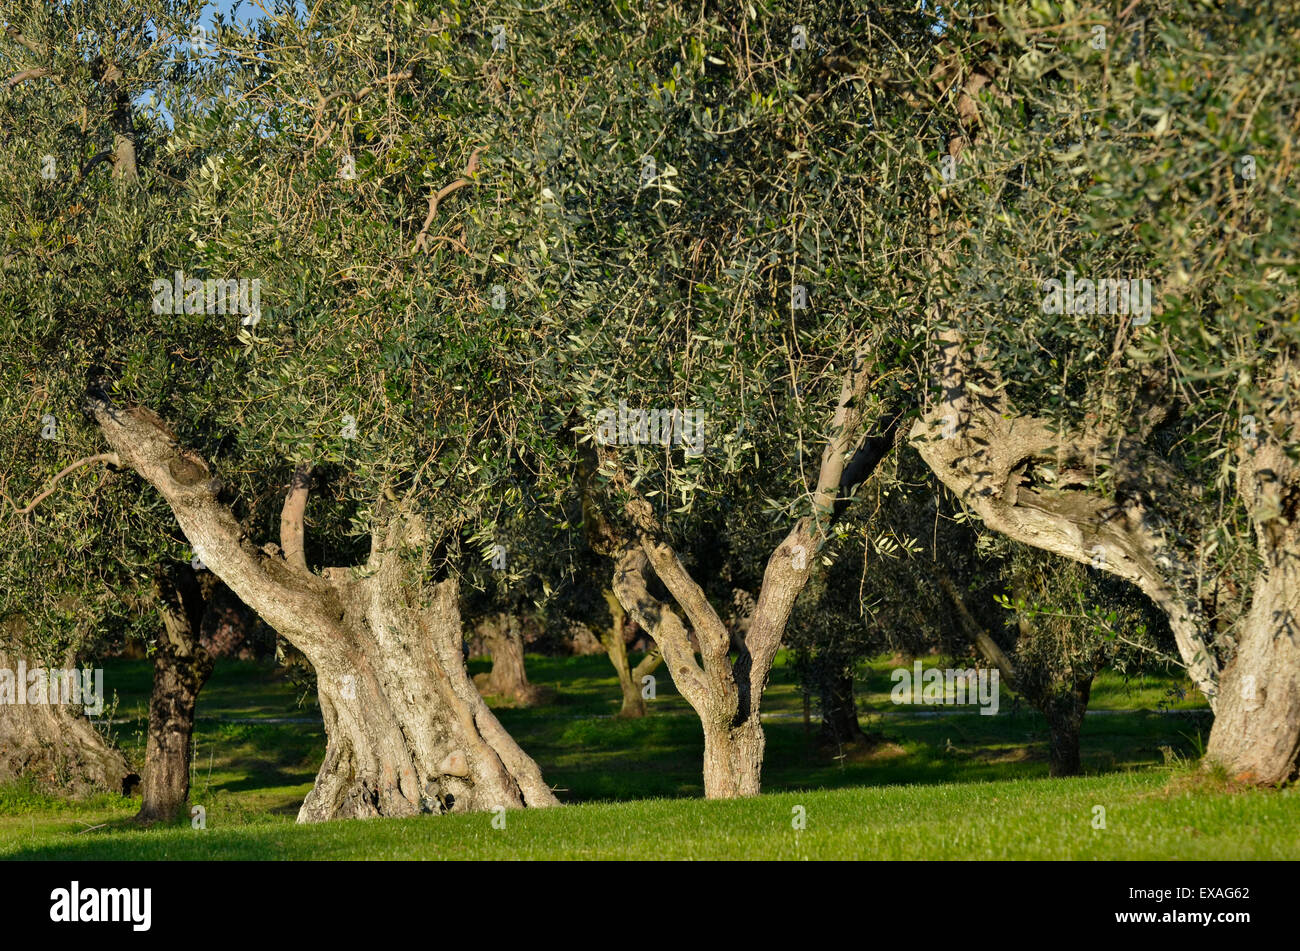 Olive Trees Garden Stock Photos & Olive Trees Garden Stock Images ...